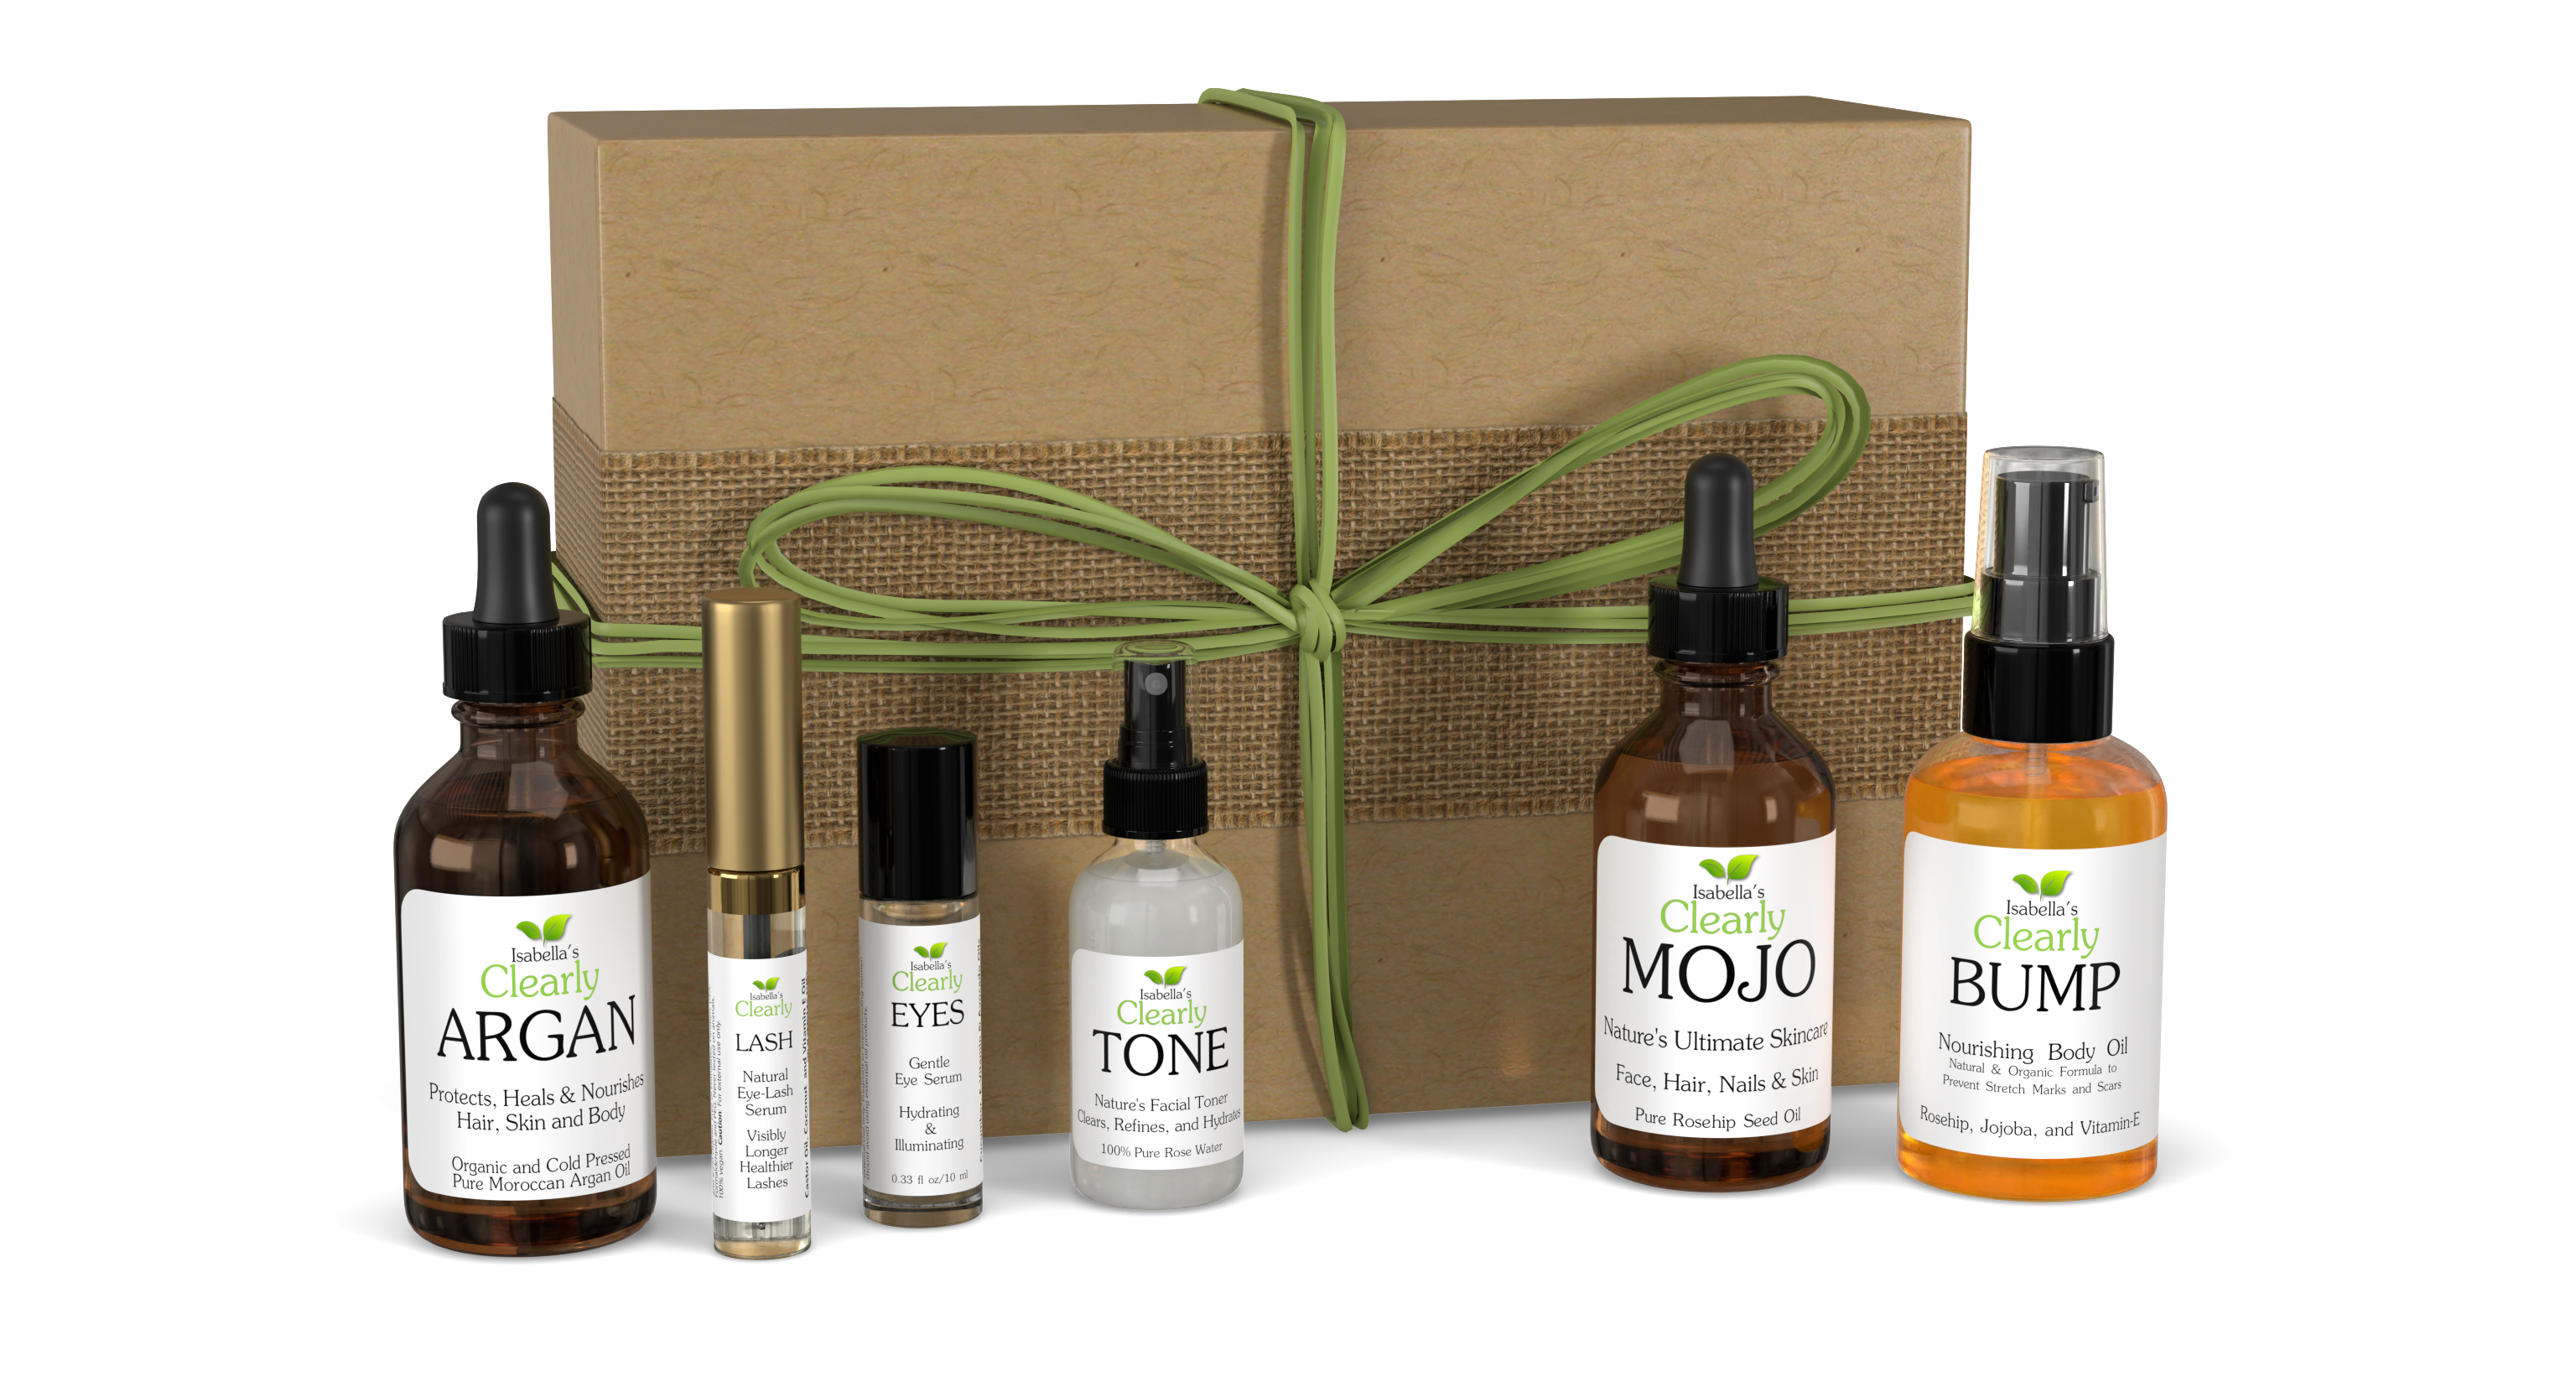 Clearly MAMA Beauty Box for Moms and Expecting Moms